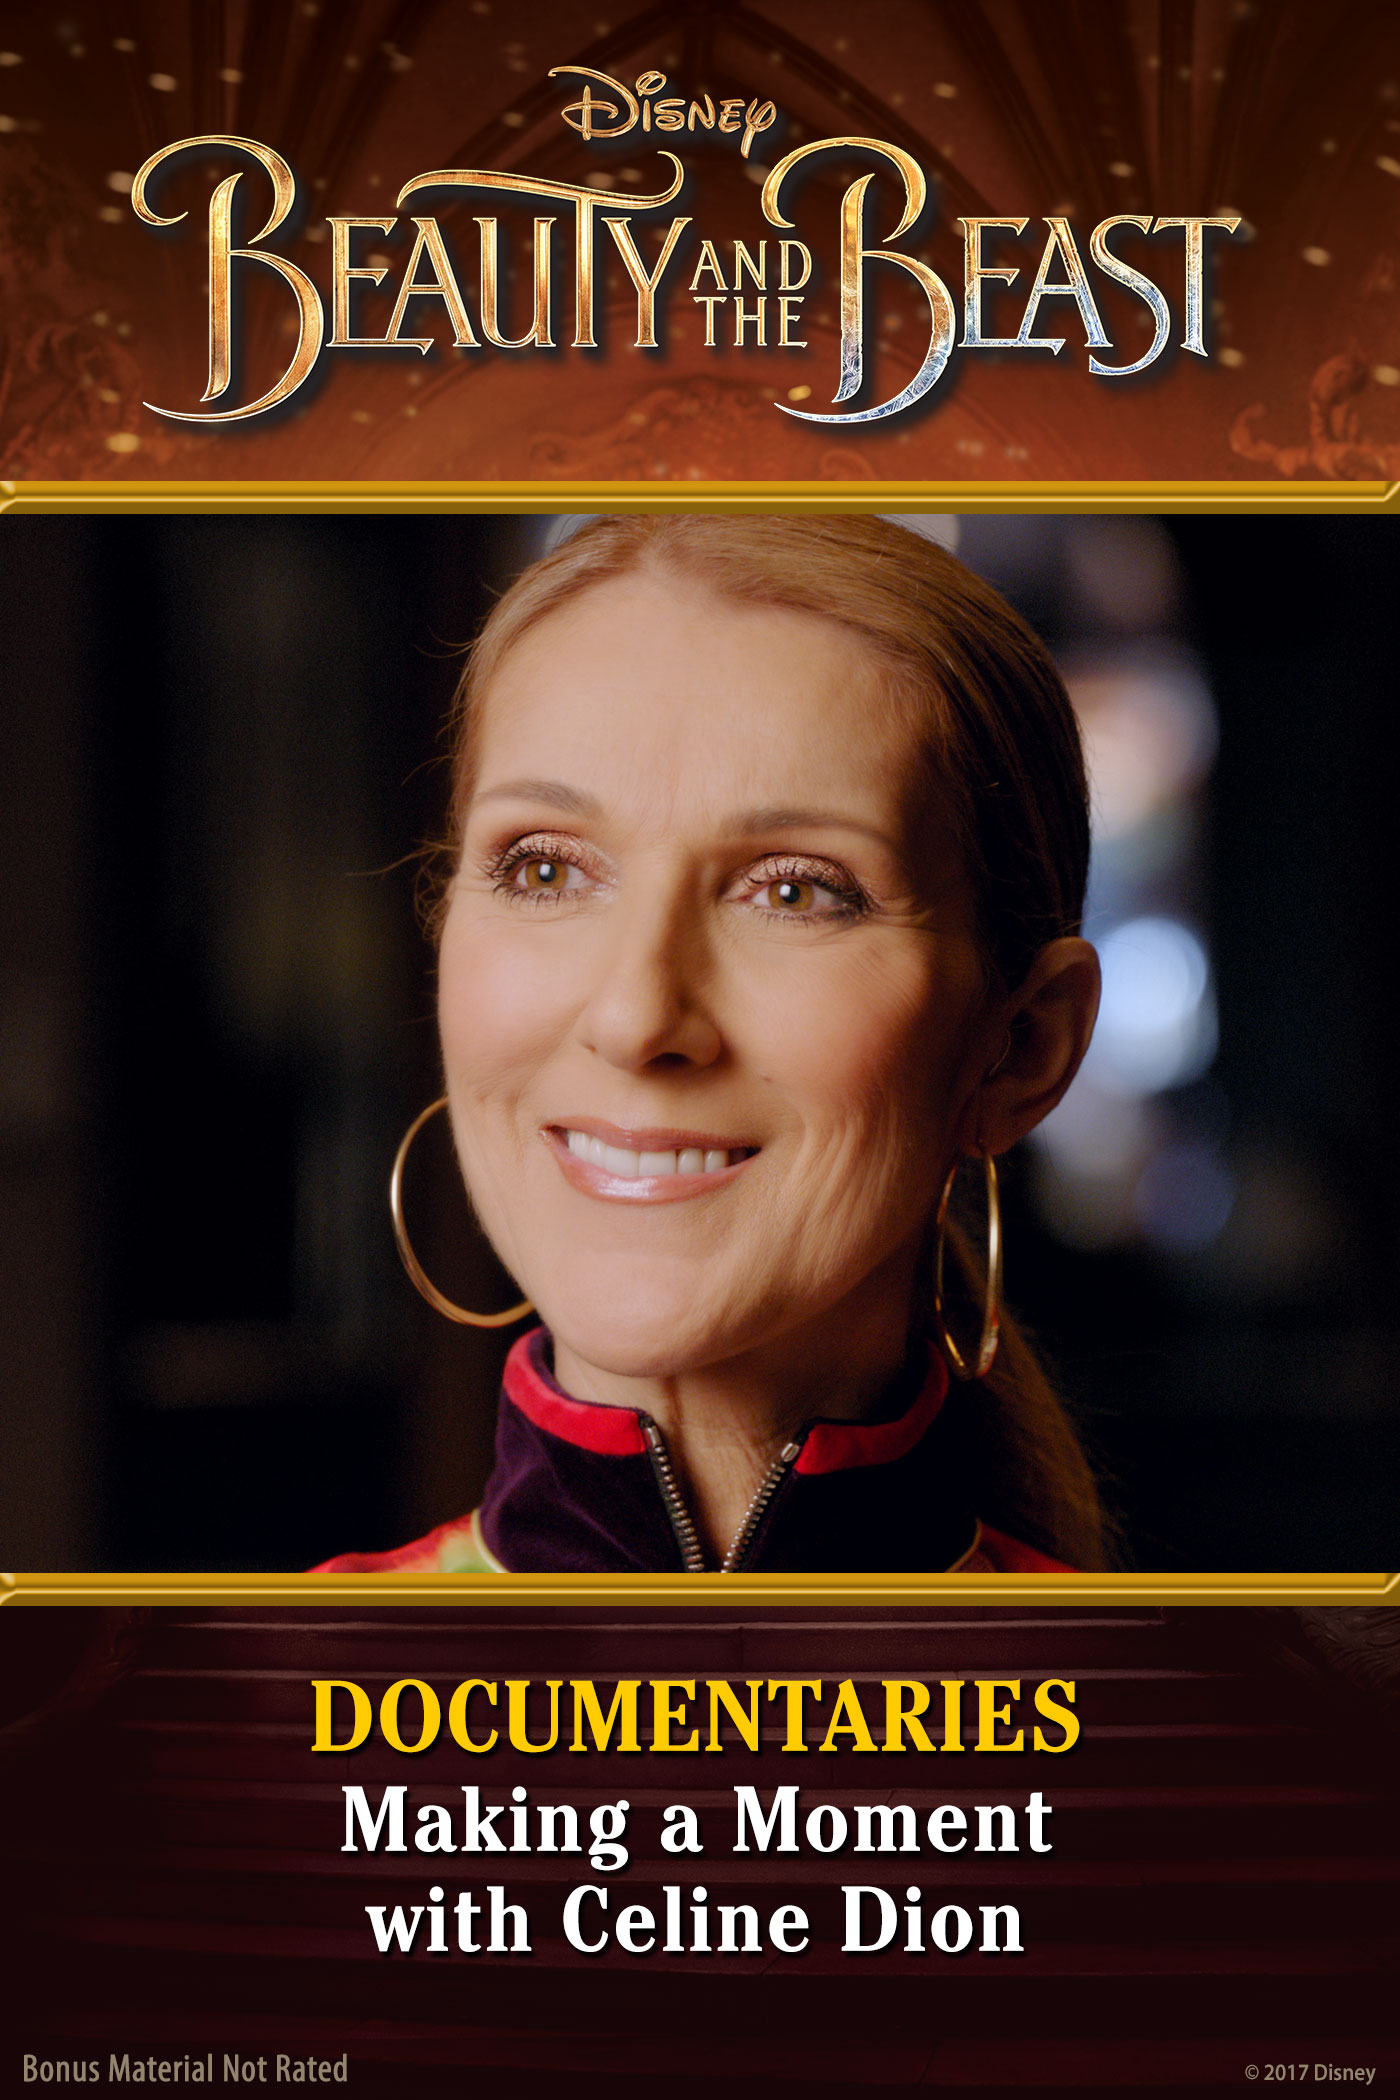 Documentaries: Making a Moment with Celine Dion